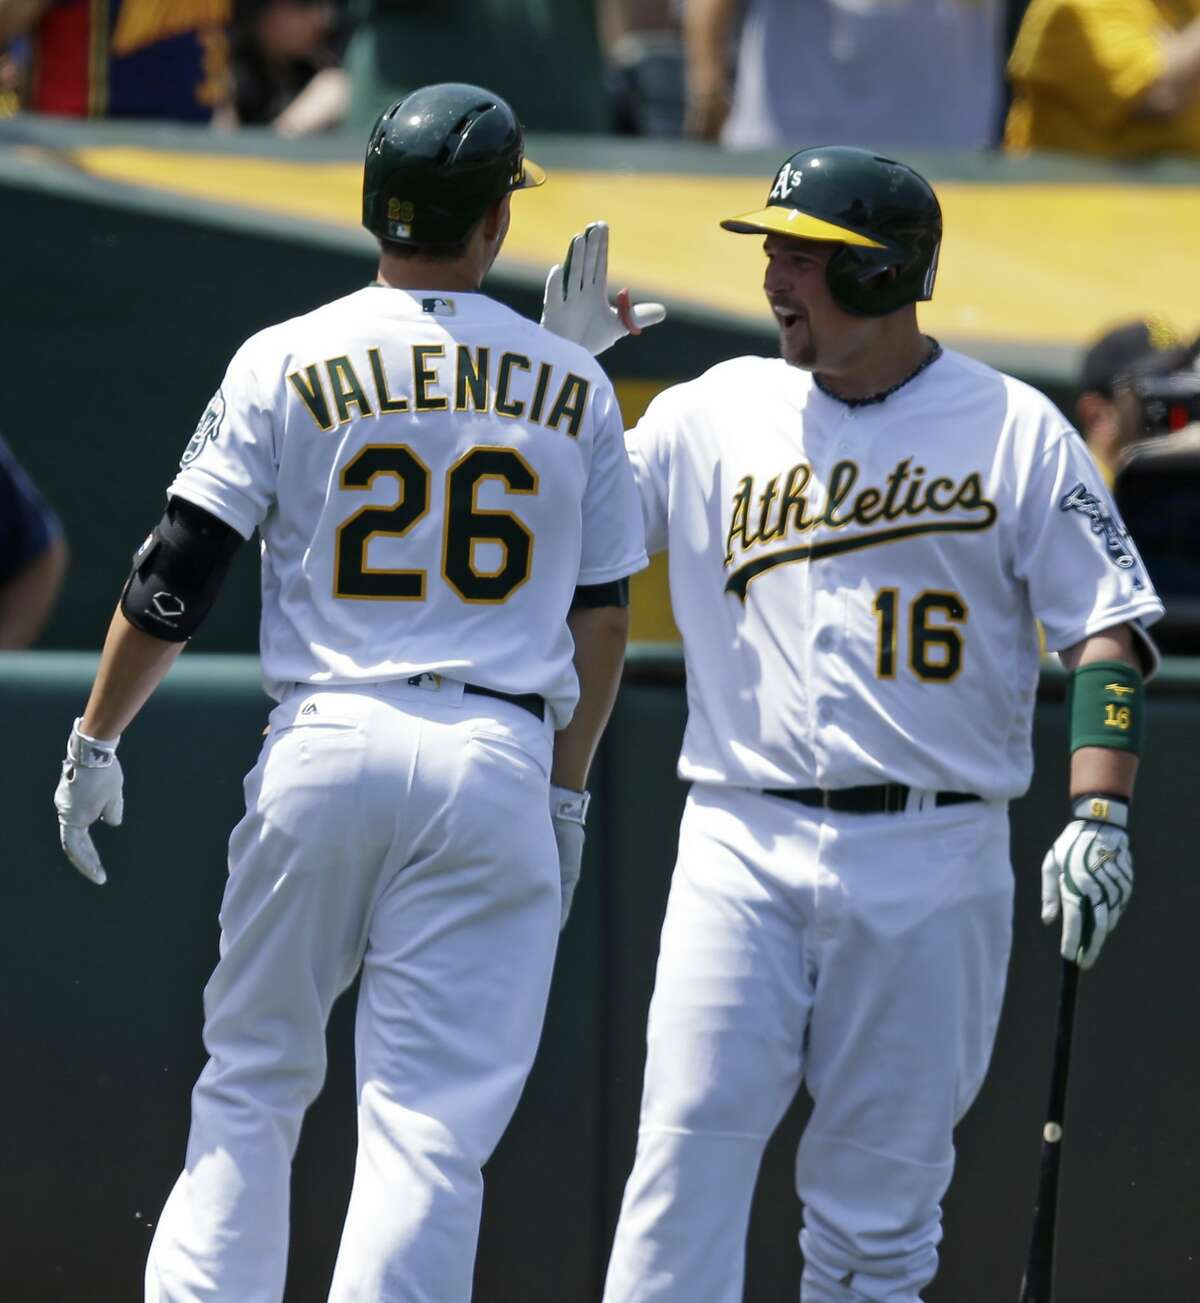 Oakland Athletics' Danny Valencia, left, is congratulated by Billy Butler (16) after hitting a home run off Detroit Tigers' Matt Boyd in the fourth inning of a baseball game Saturday, May 28, 2016, in Oakland, Calif.